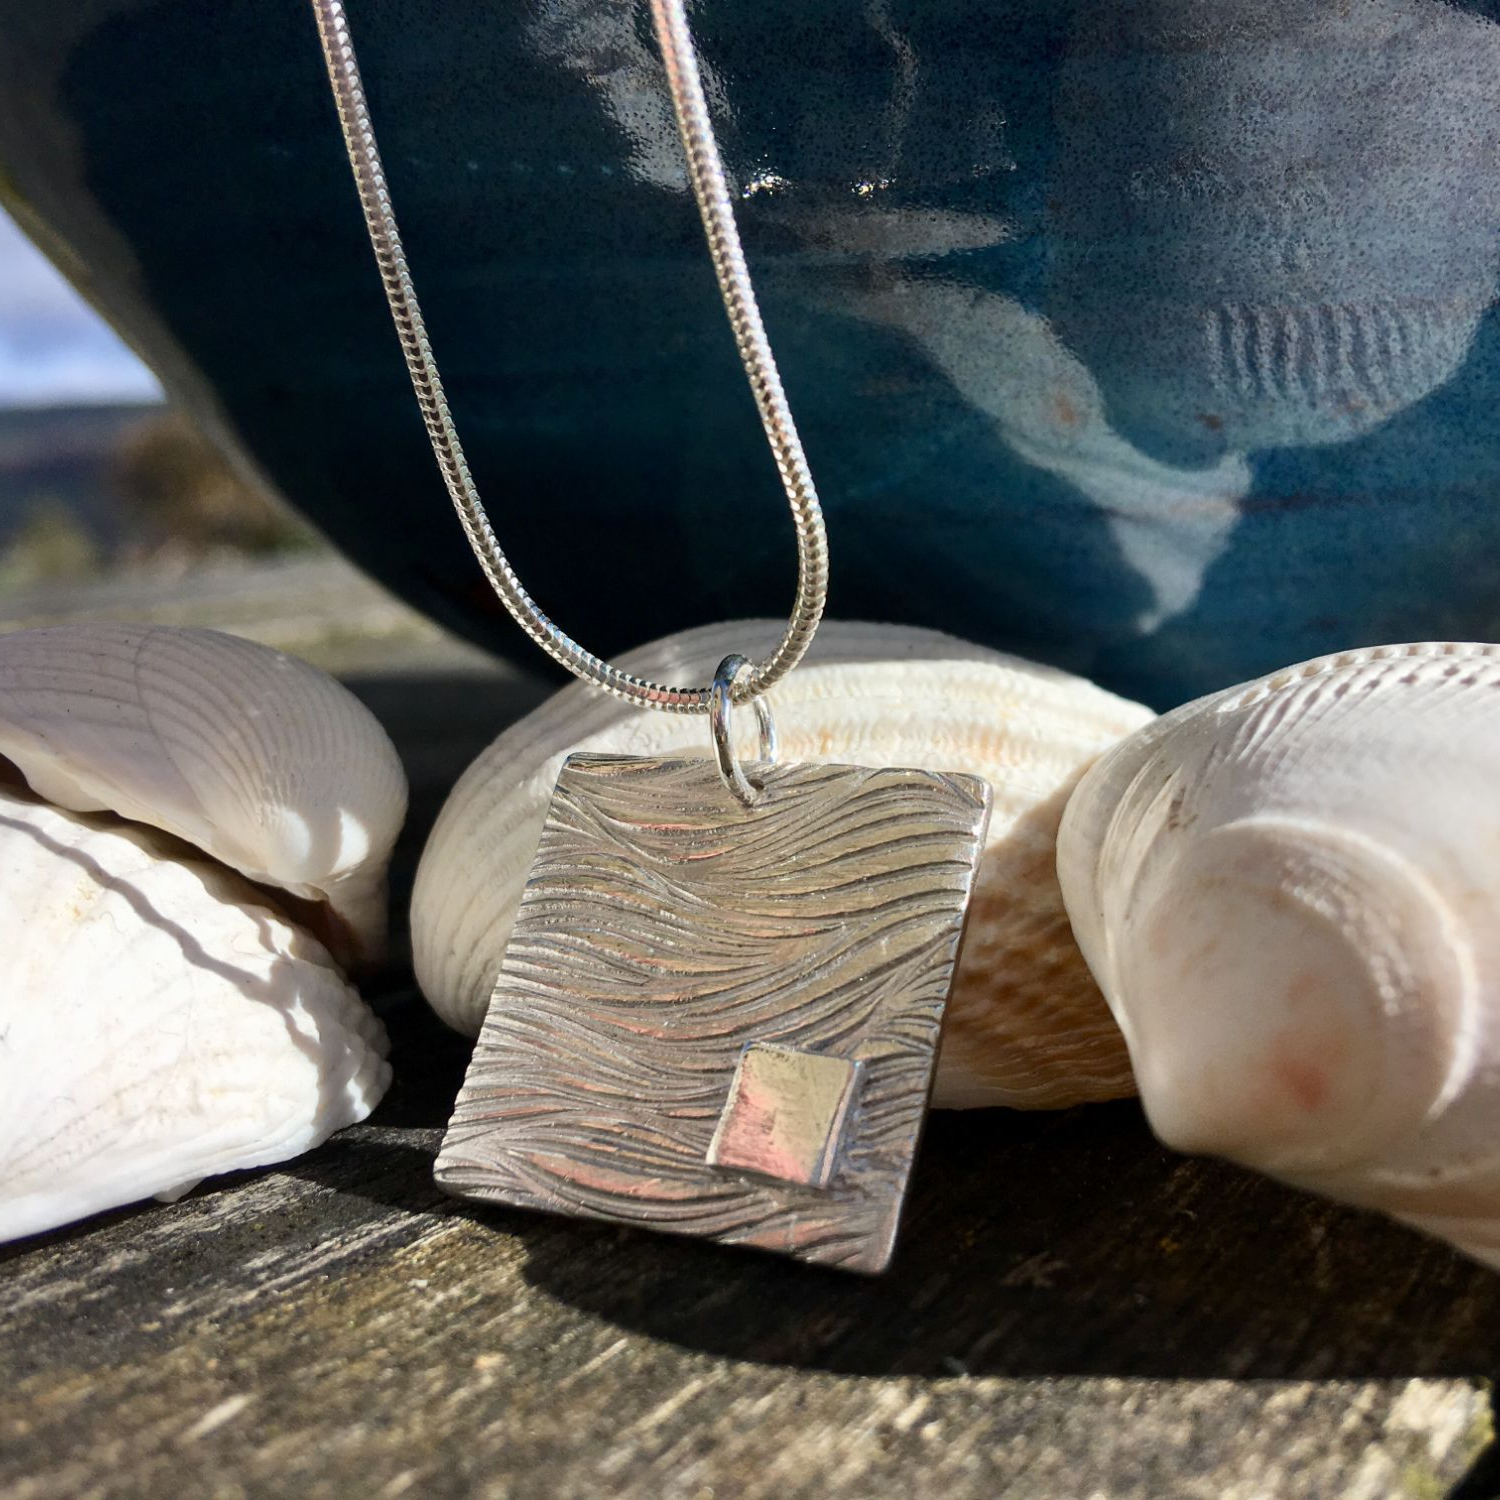 Seaside themed necklace sitting against shells